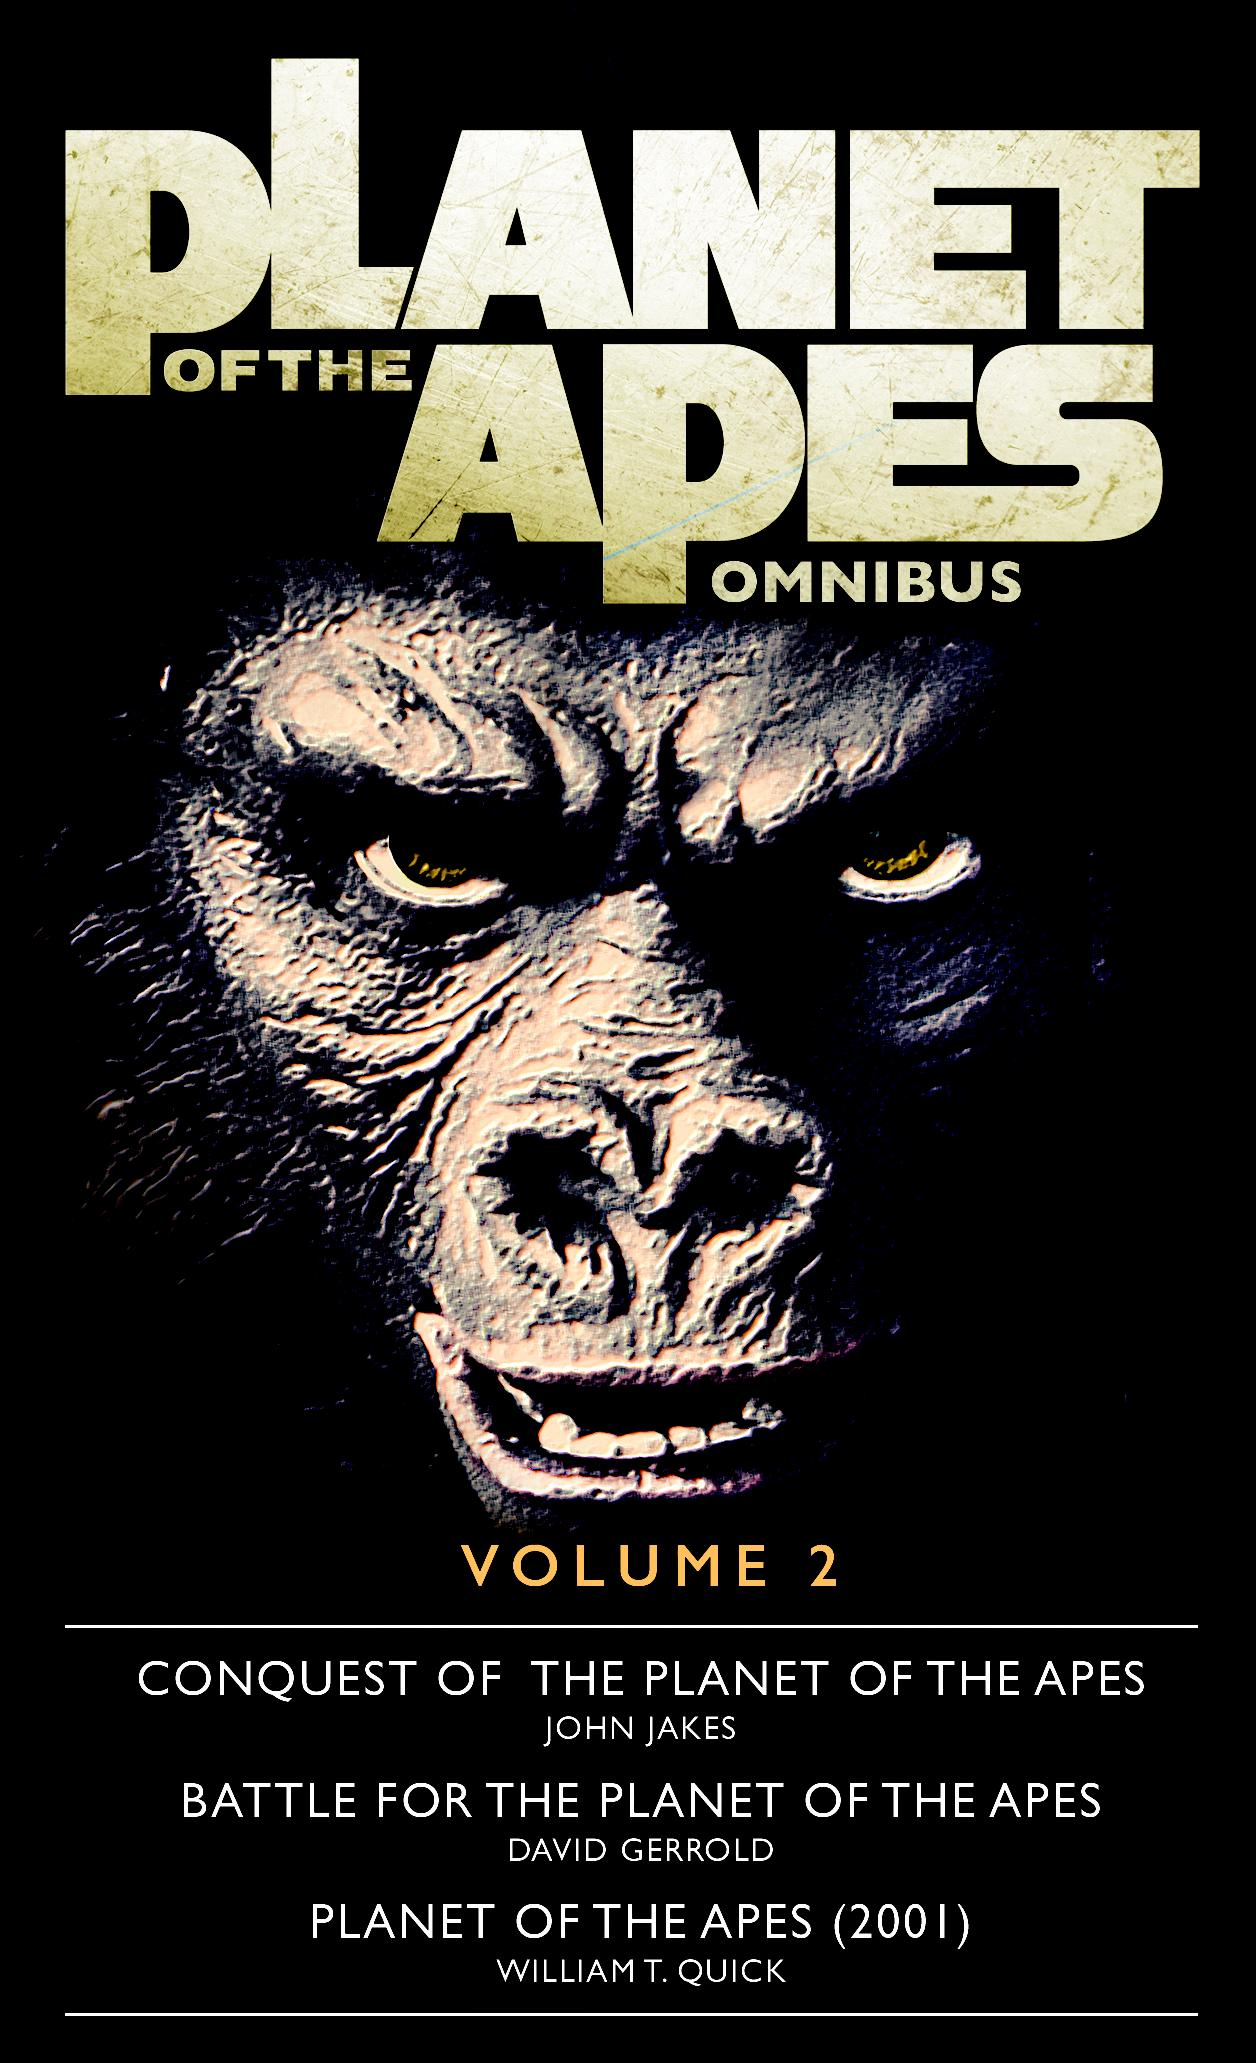 Planet of the Apes Omnibus 2 фигурки игрушки neca фигурка dawn of the planet of the apes 7 series 1 caesar